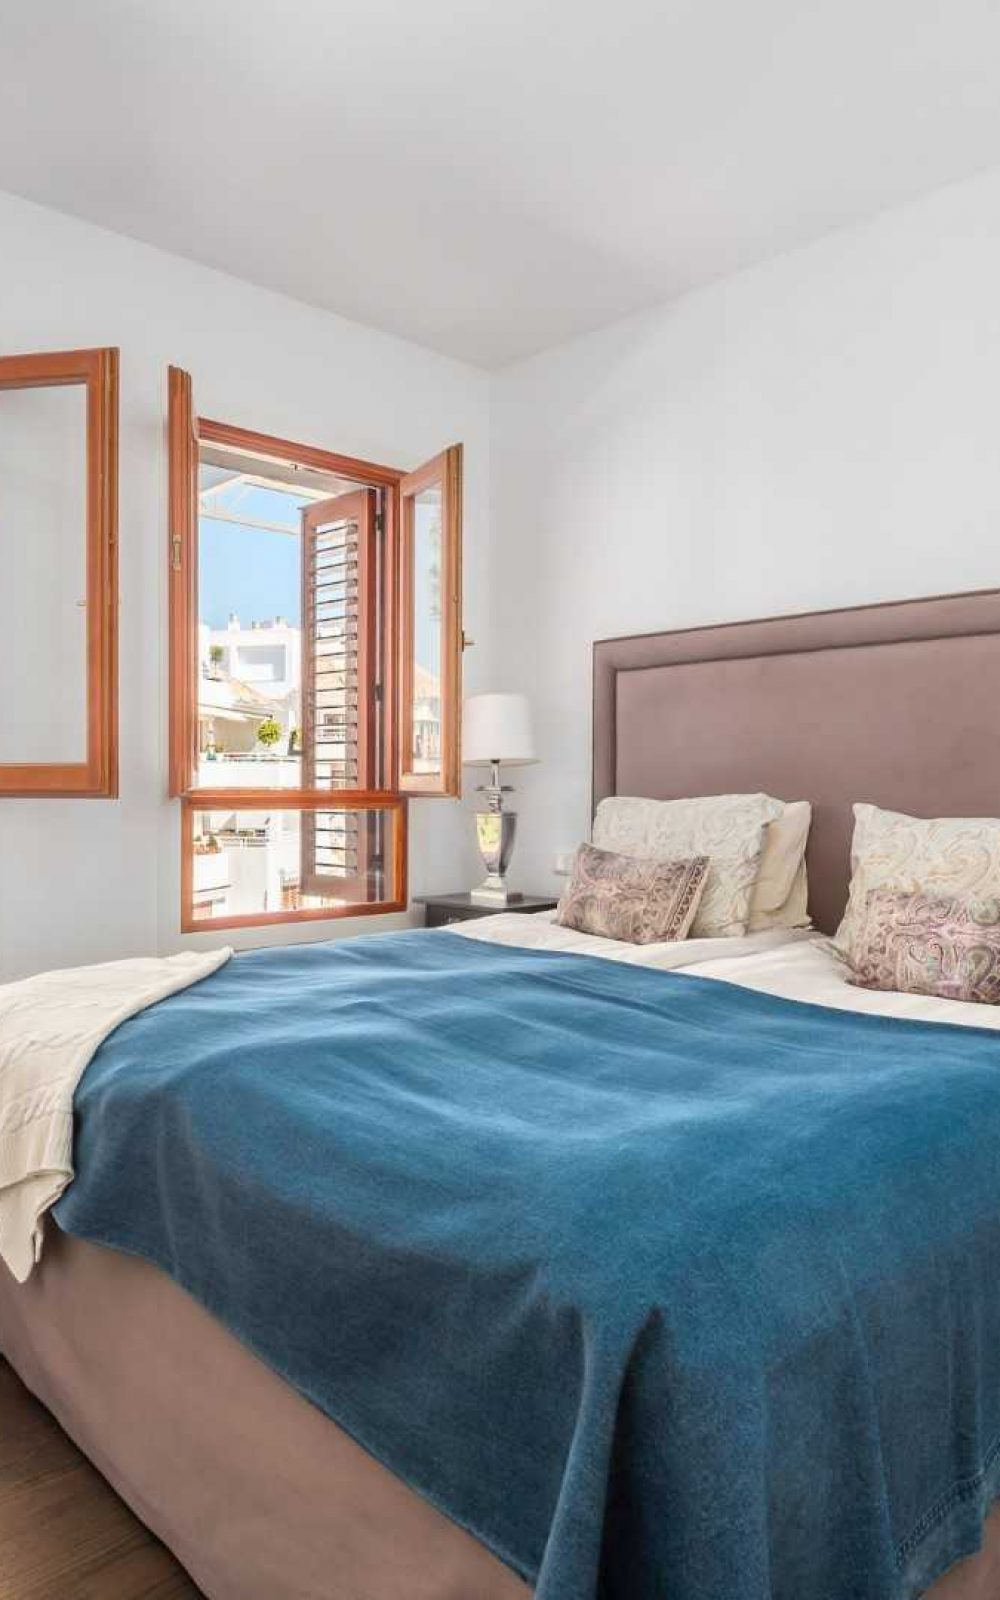 Alcores 532-NFH-06Bedroom-01 (Large)